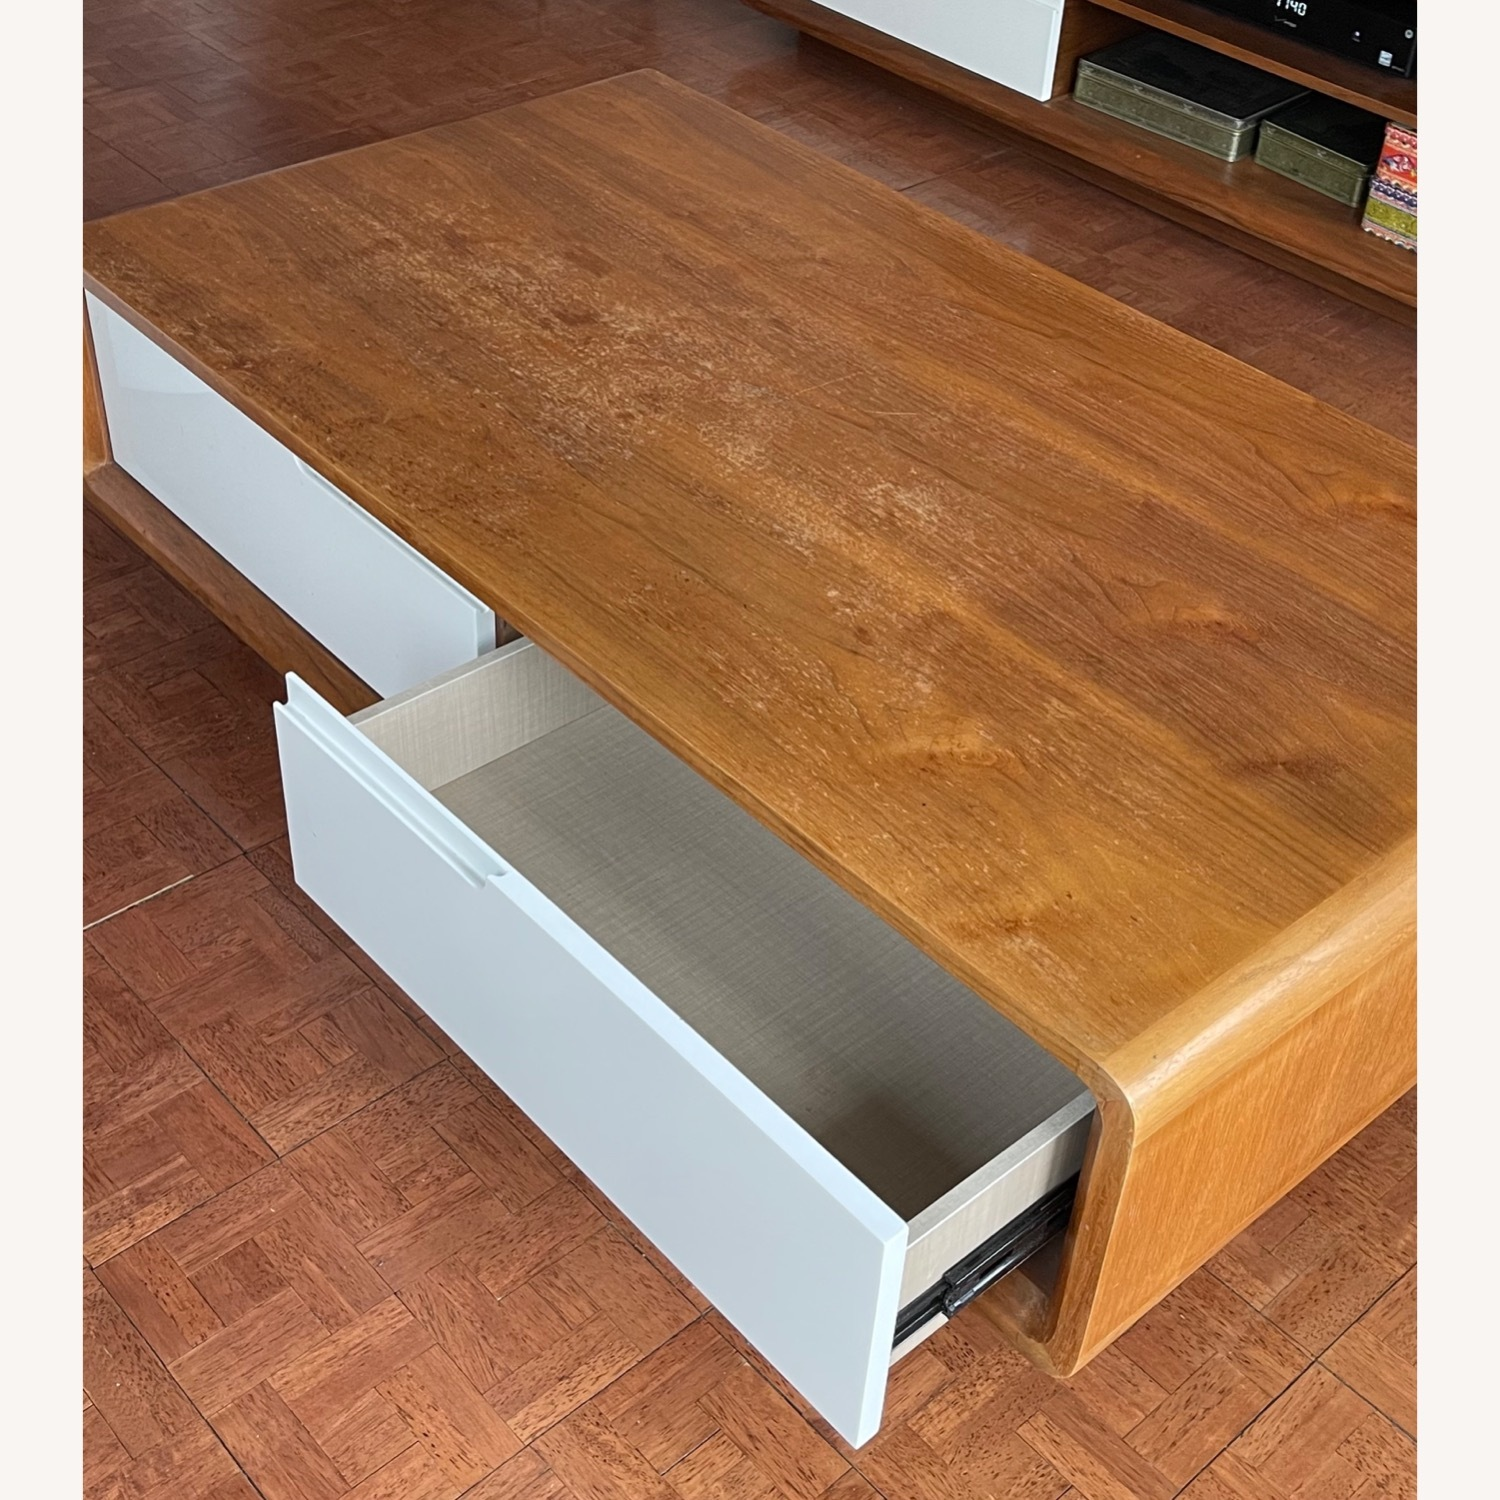 Design Art Deco Coffee Table with Four Drawers - image-2